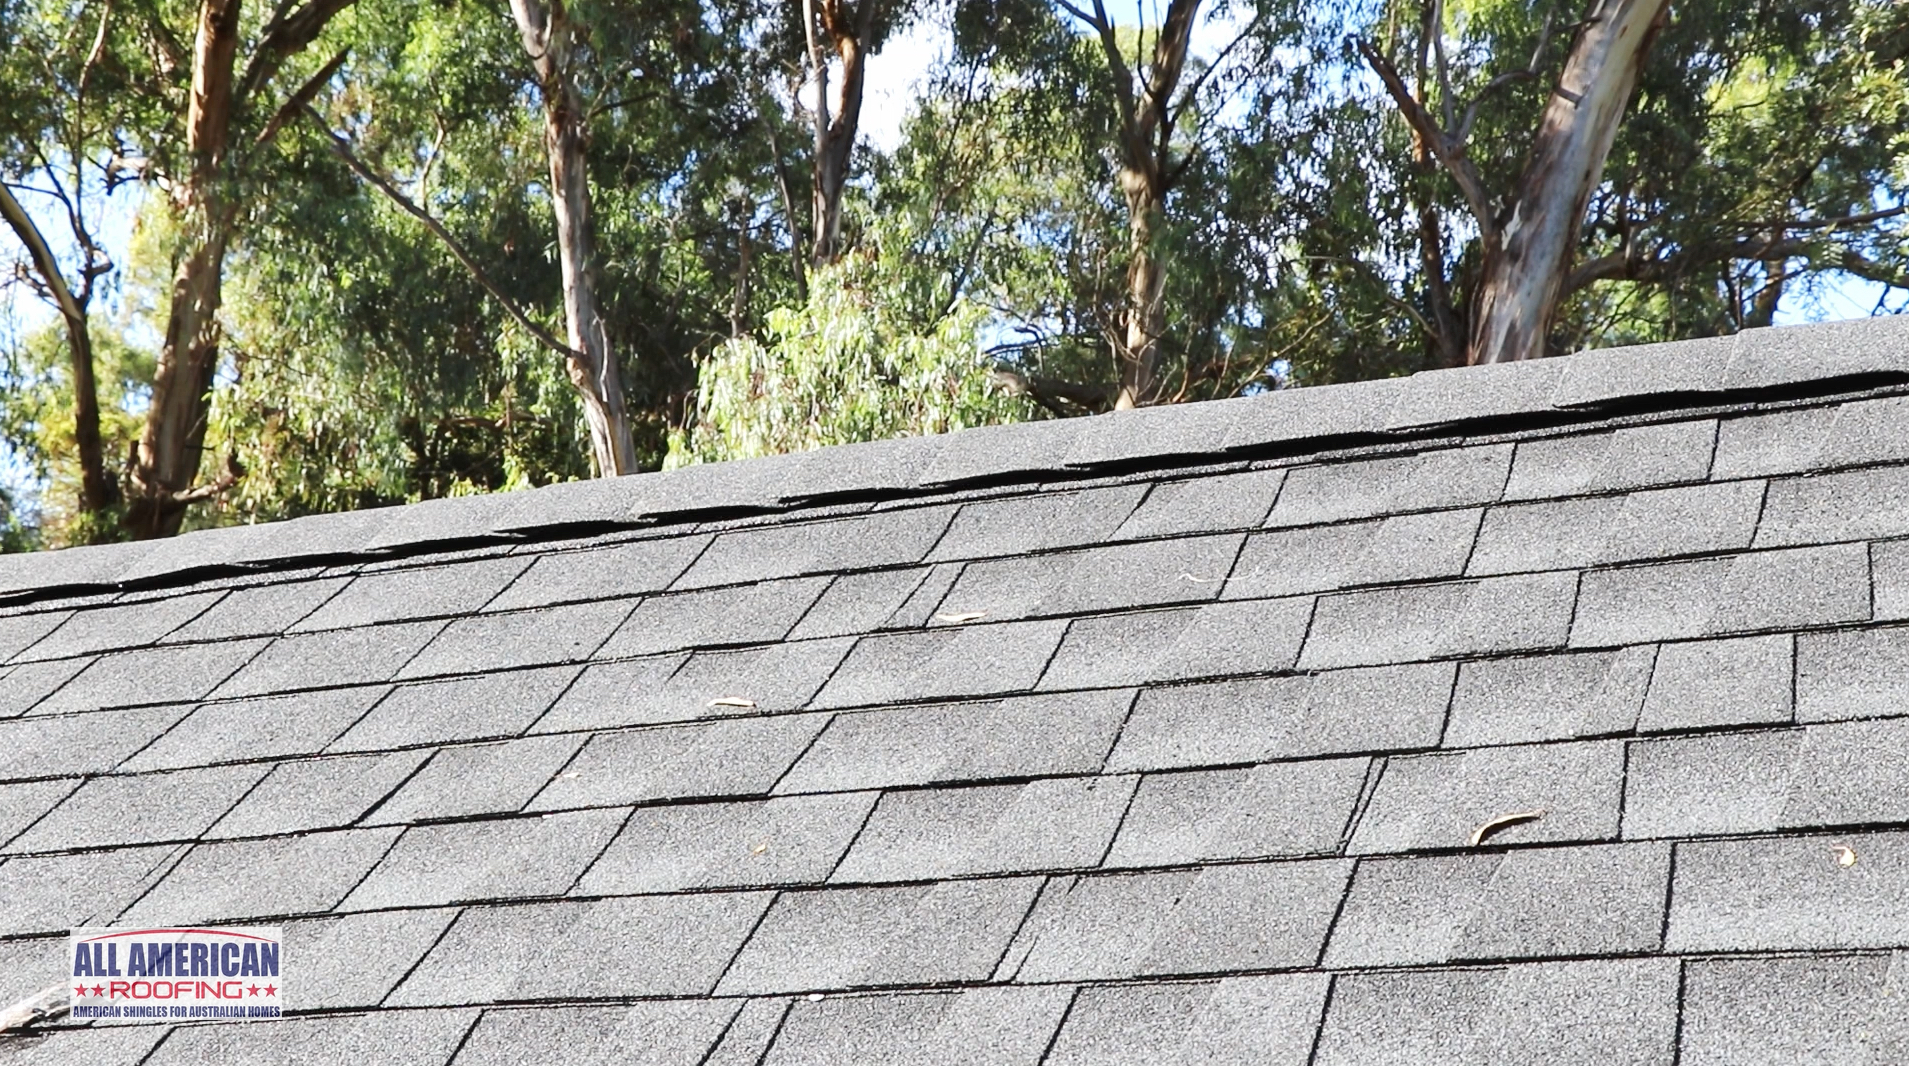 ridge-capping asphalt roof shingles